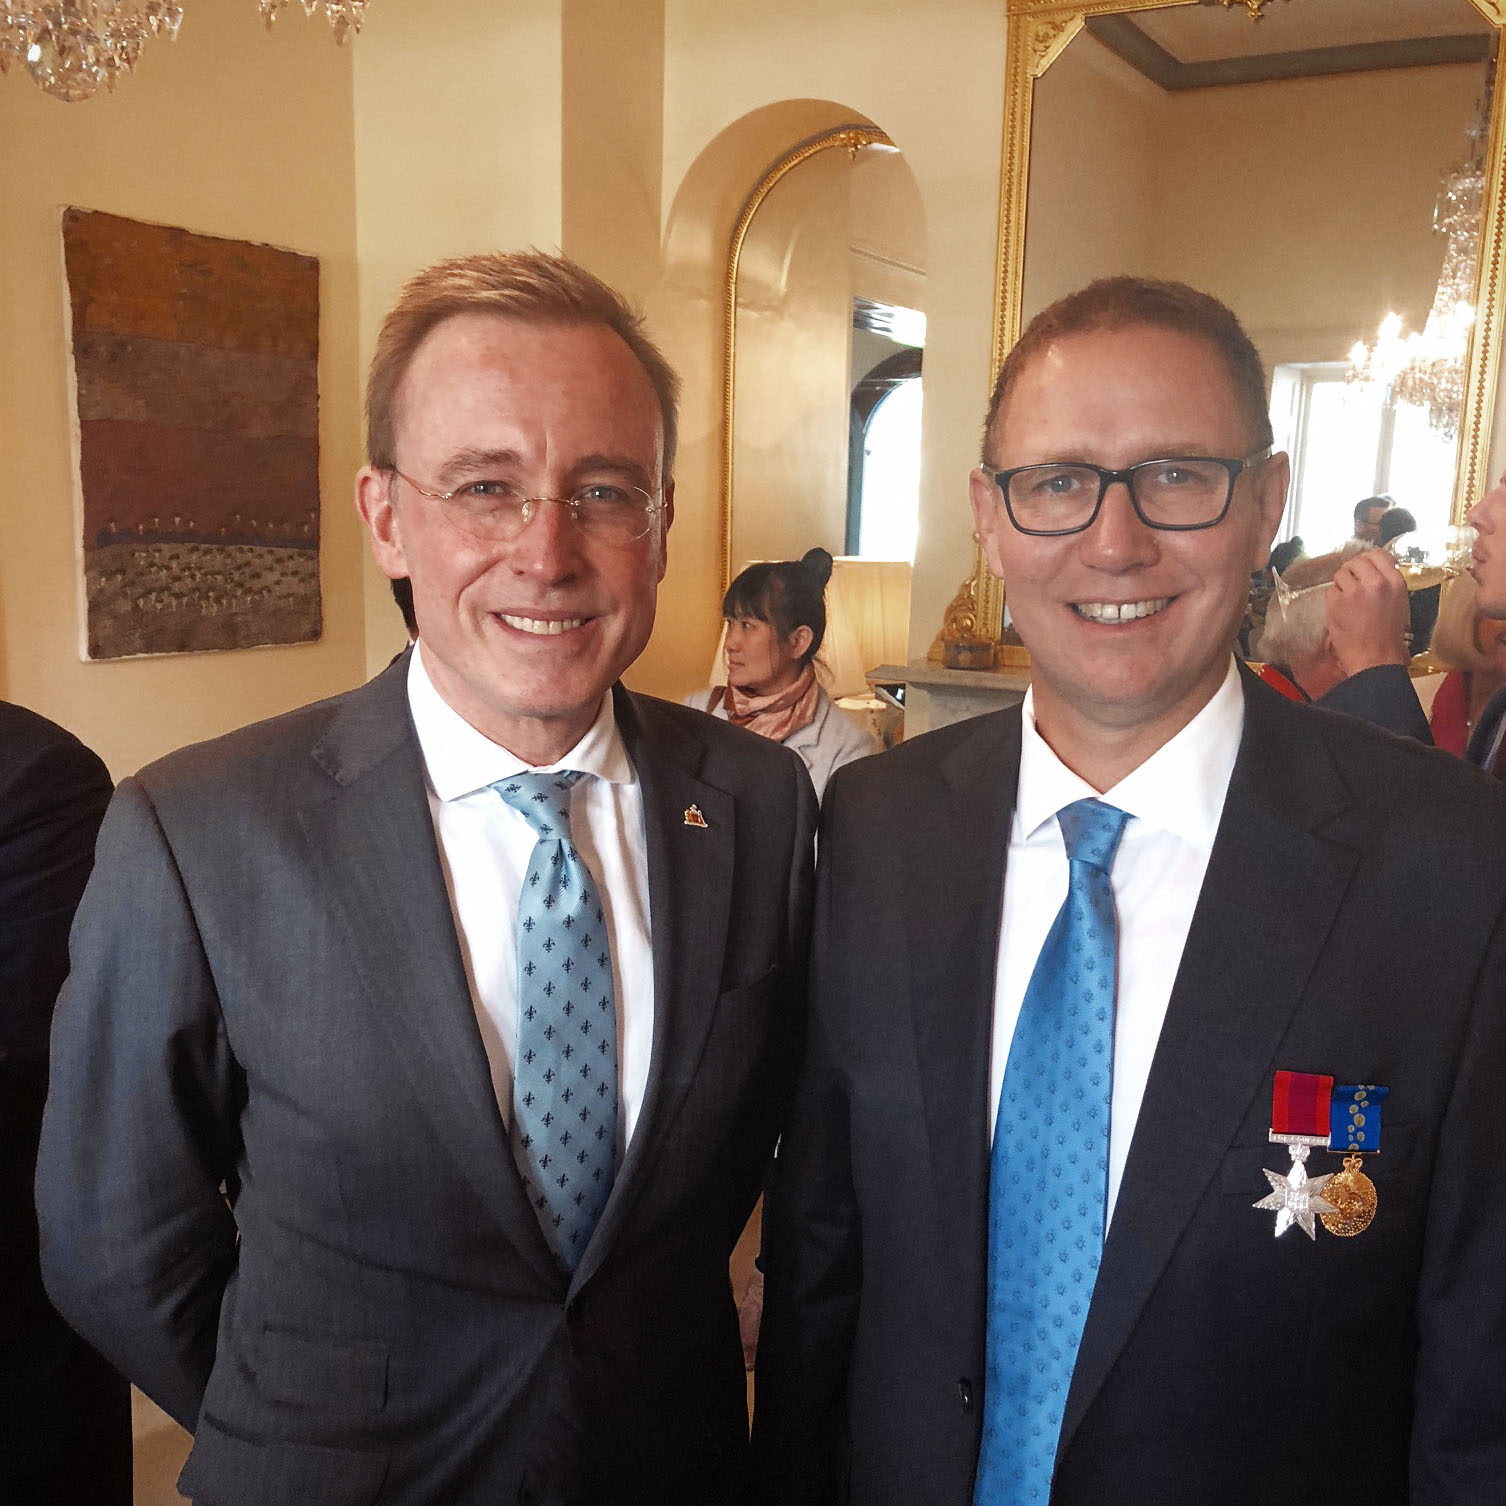 Lord Mayor Martin Haese with Doctor Richard Harris SC AOM Australian of the Year 2018 for his work during the Thai cave rescue